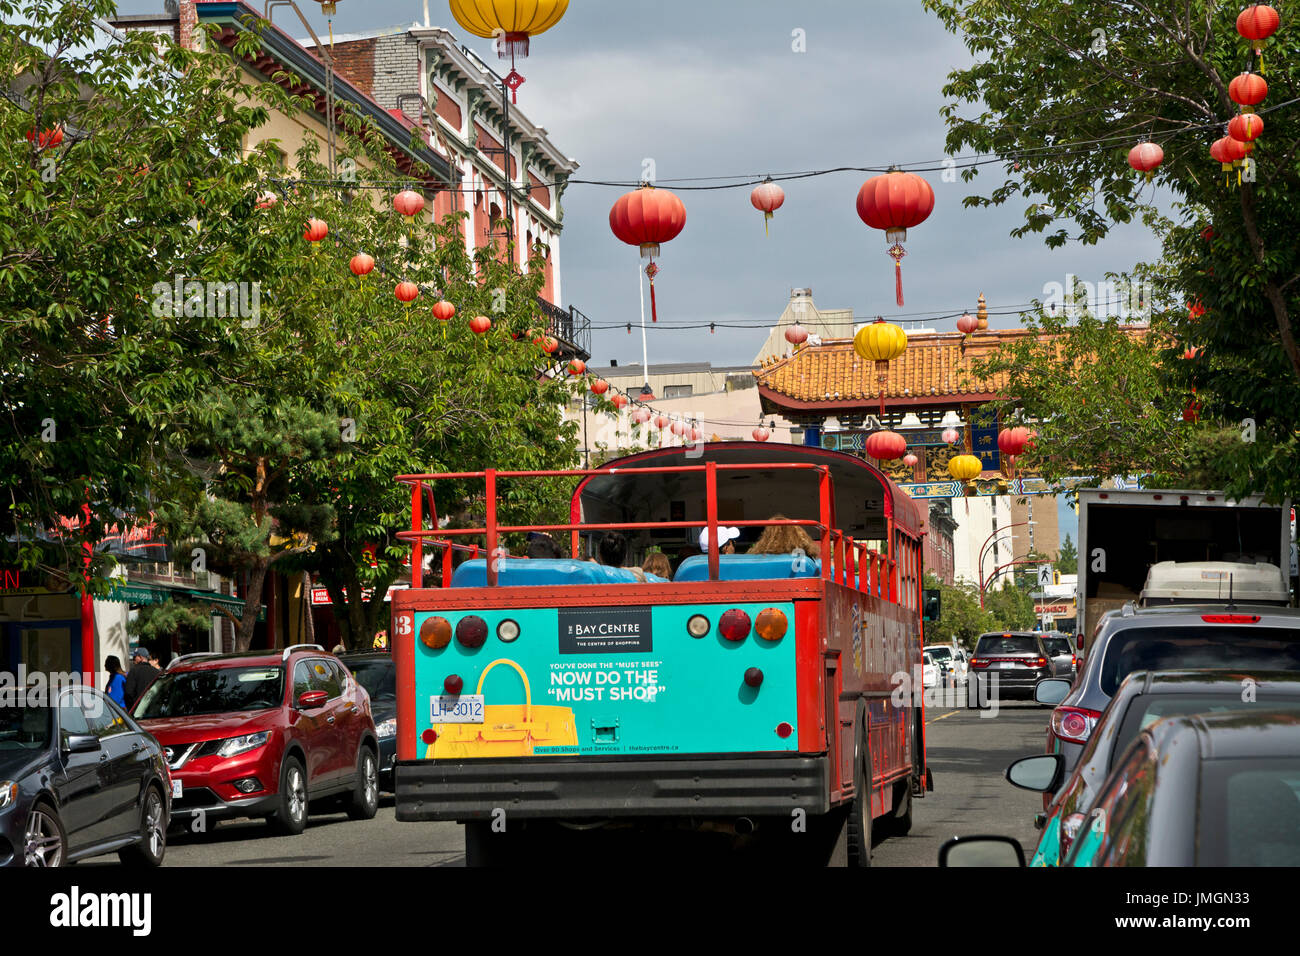 Bus tour with tourists on the streets of Chinatown in Victoria, British Columbia, Canada - Stock Image